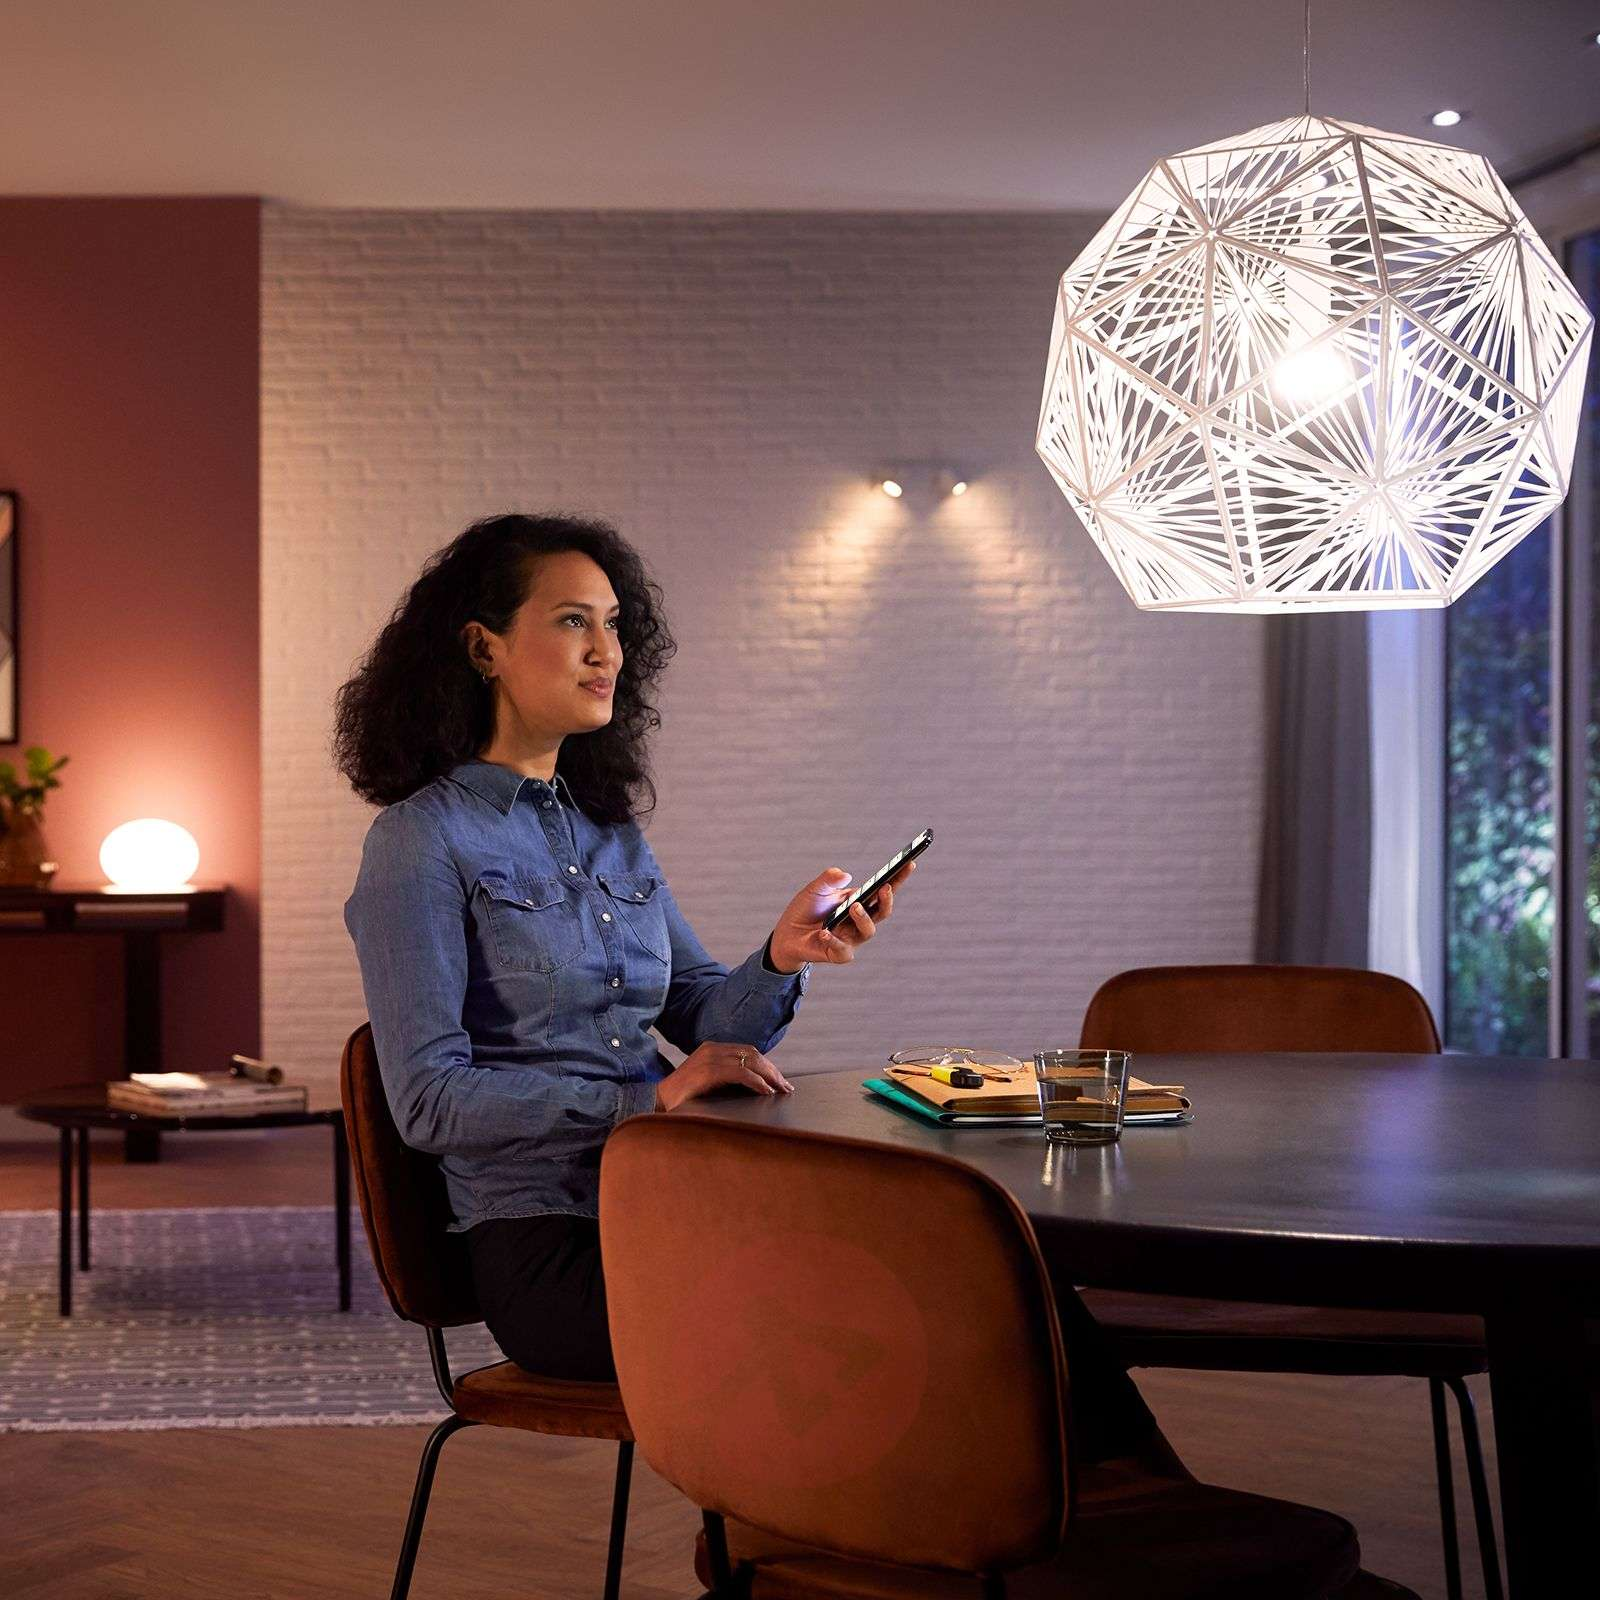 Philips Hue White and Color Ambiance GU10 Starterkit-7534164-01